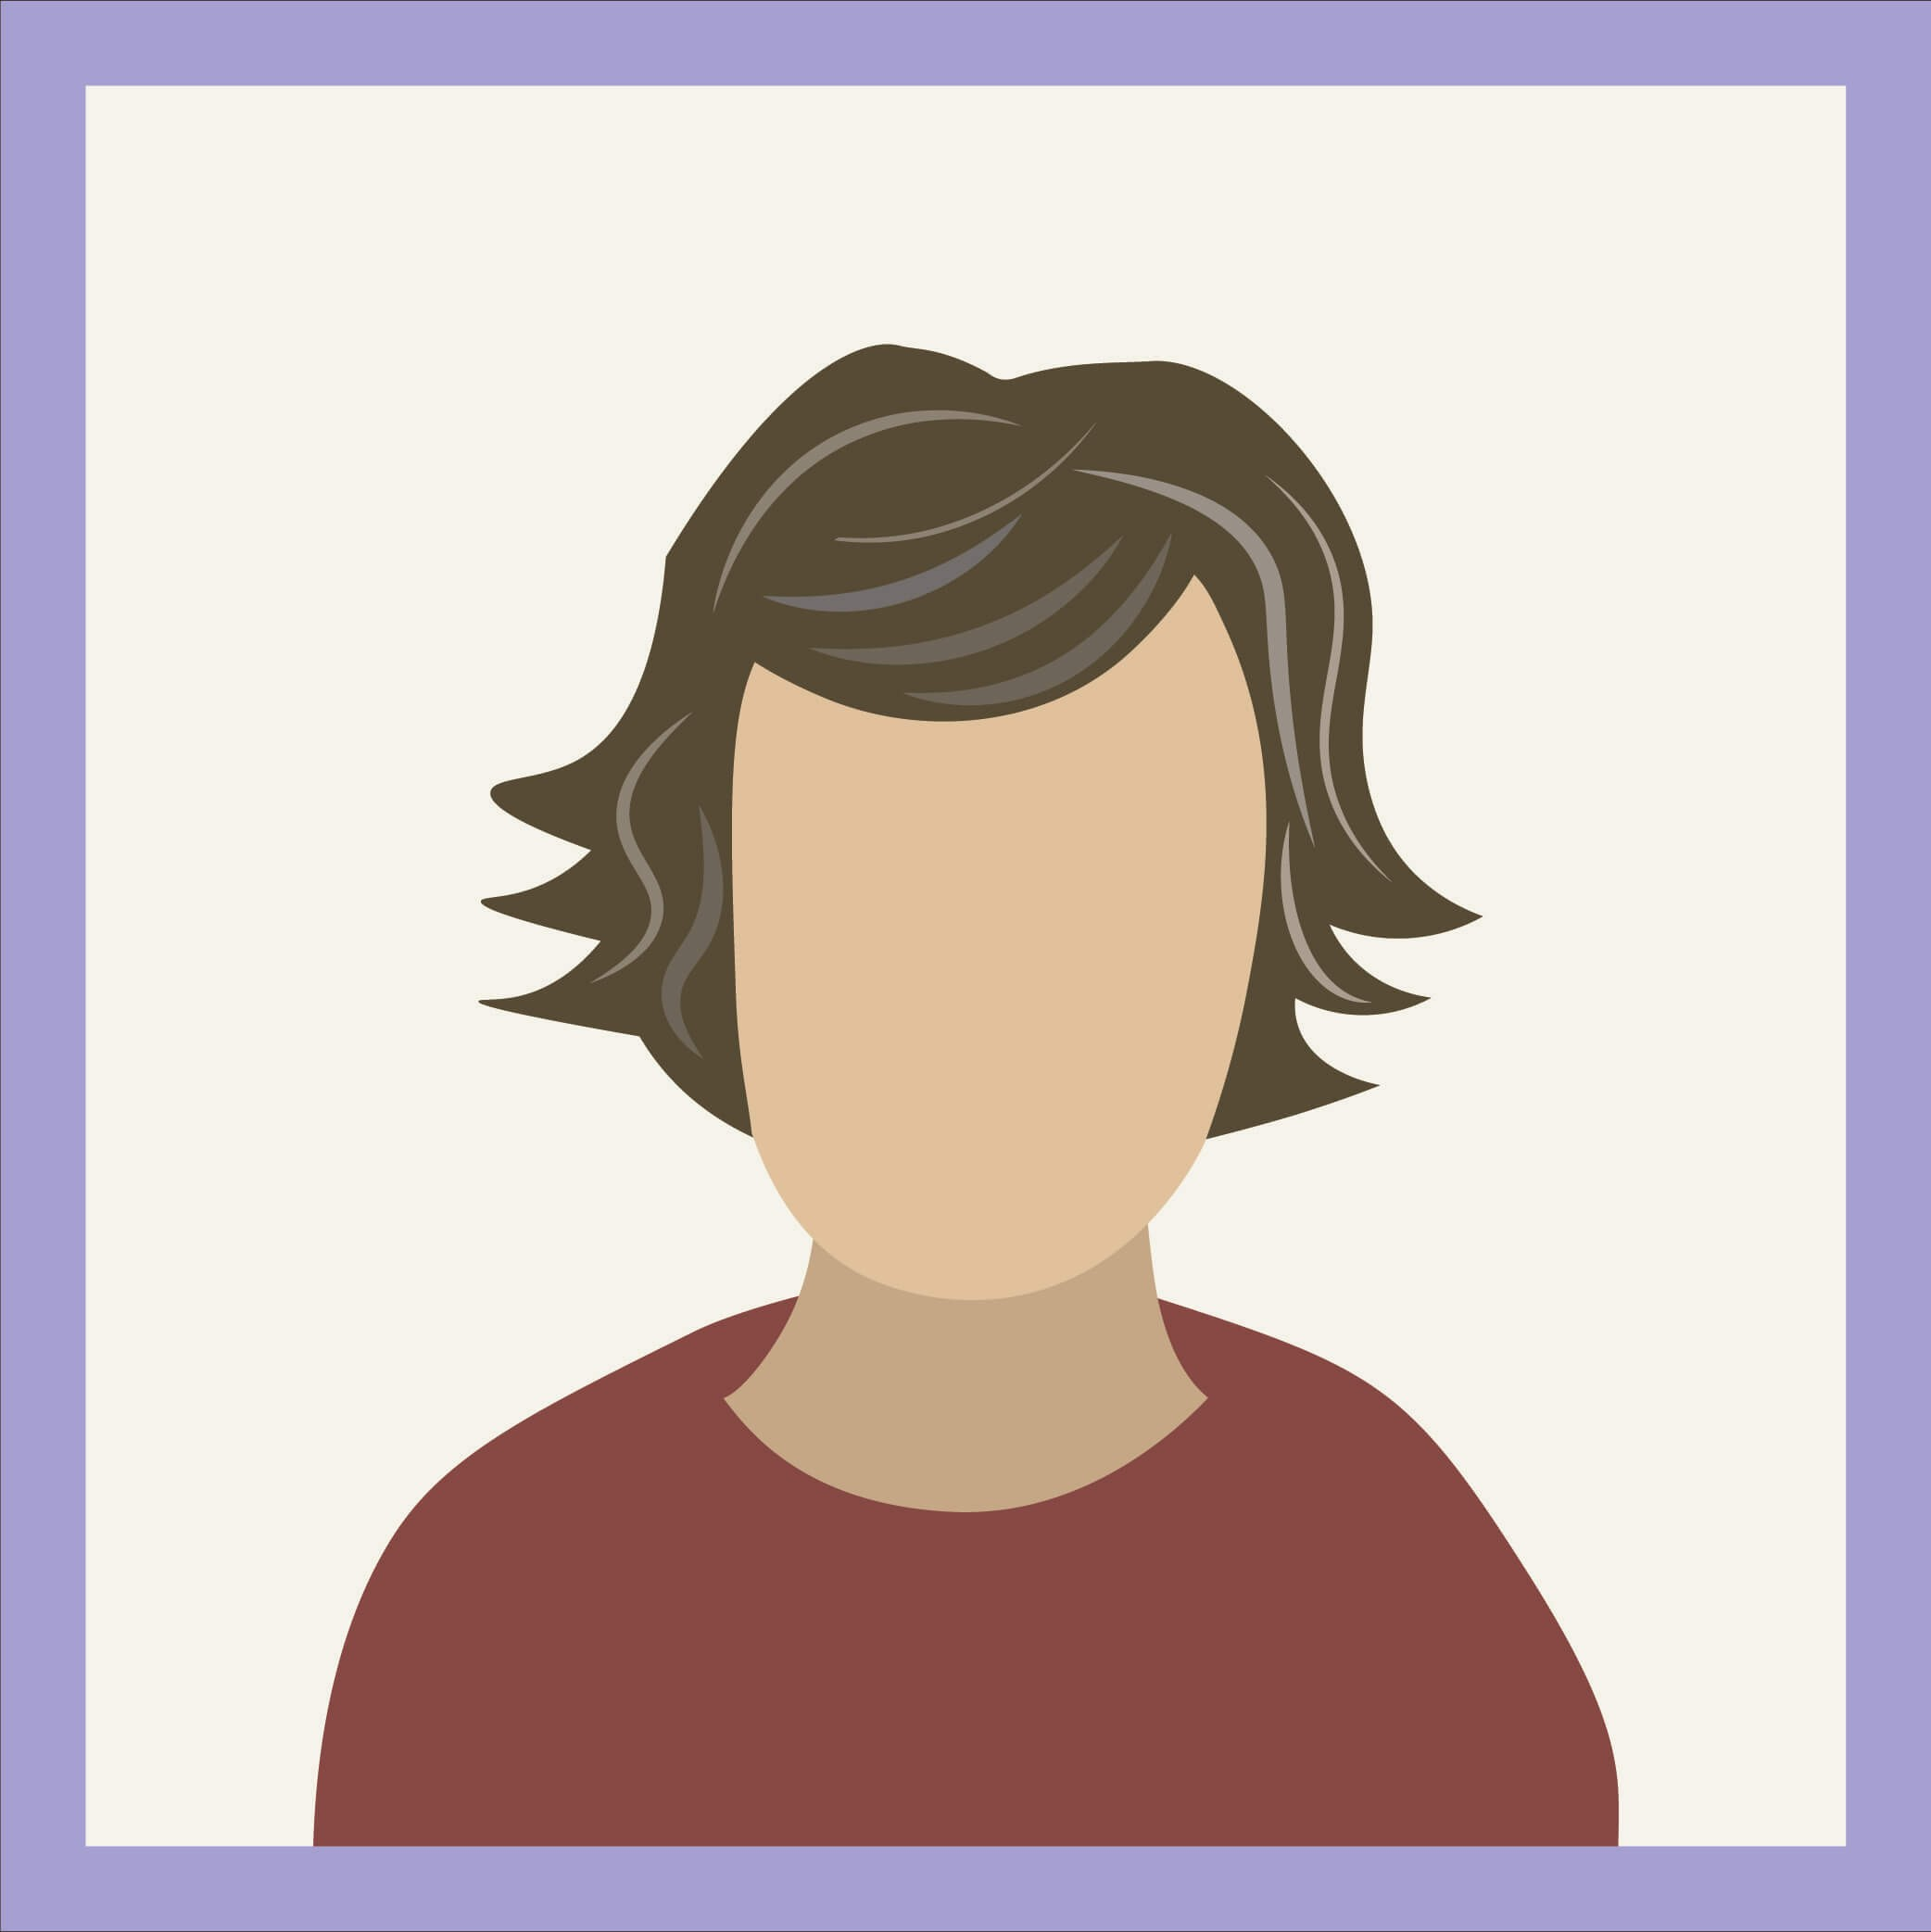 an illustration of a person with brown hair who is beginning to go gray. Gray streaks of color are in the person's hair.